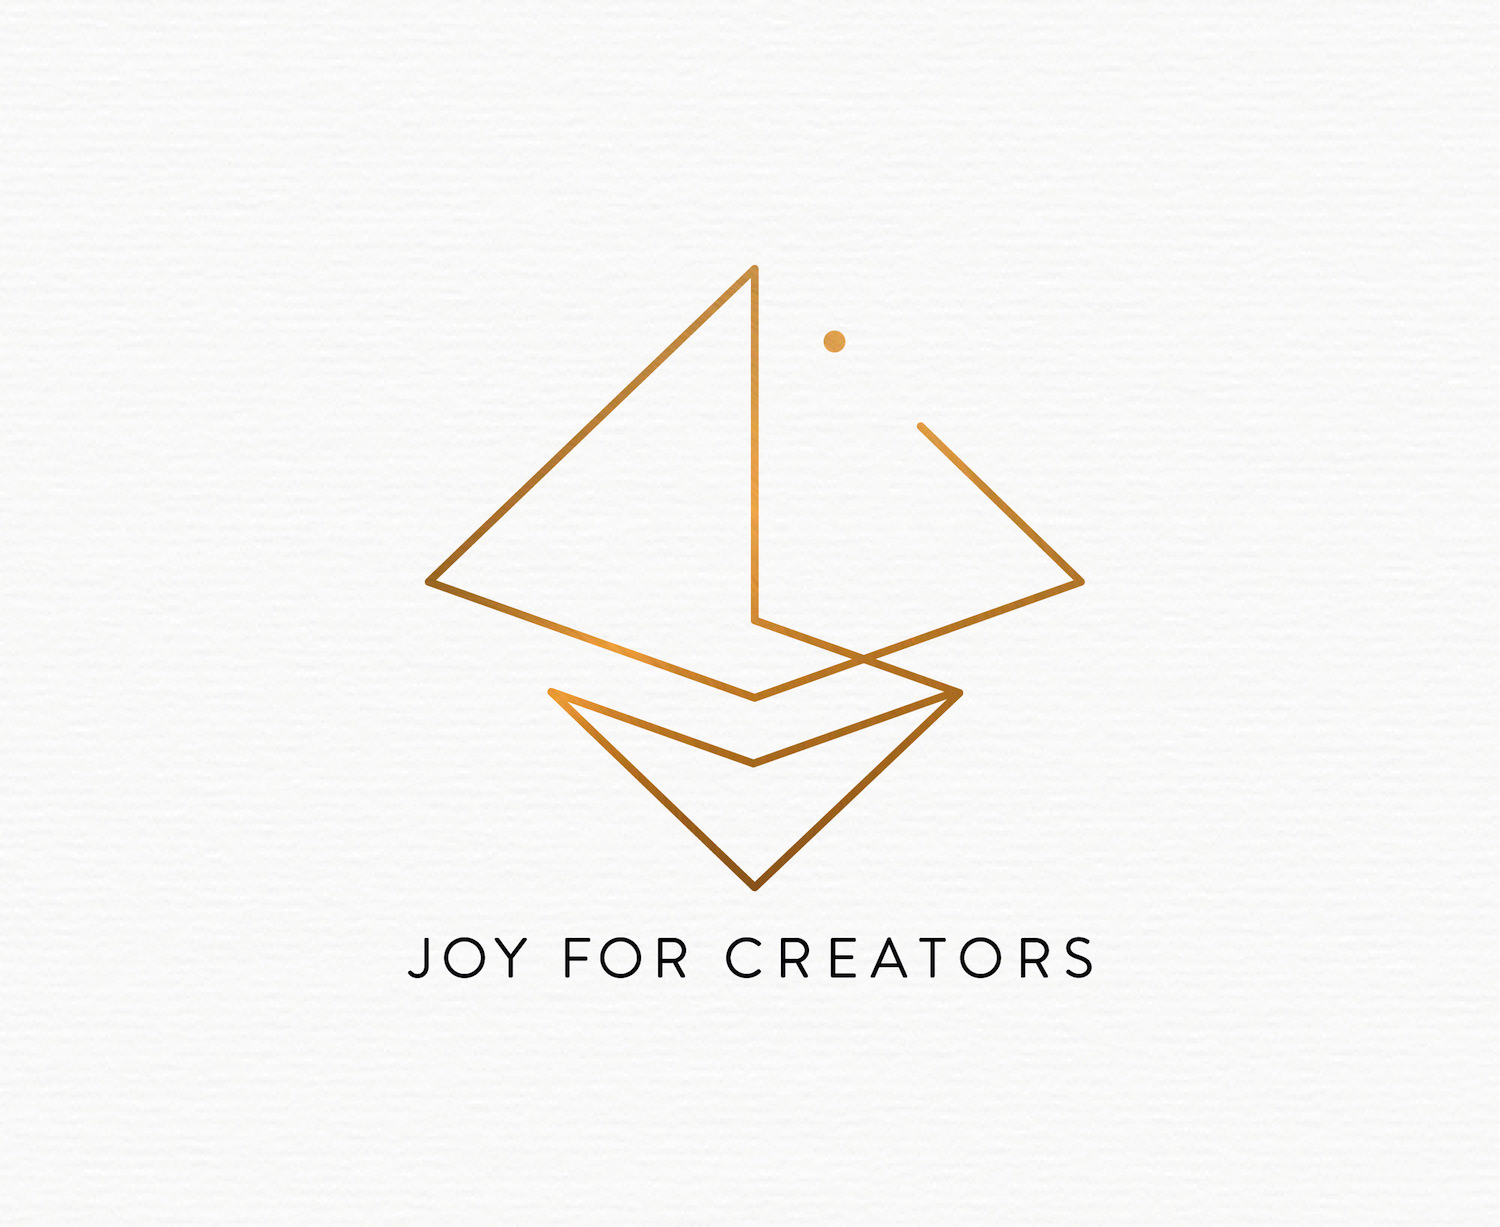 Jo-ChunYan-Graphic-Designer-Joy-For-Creators-Logo.jpg